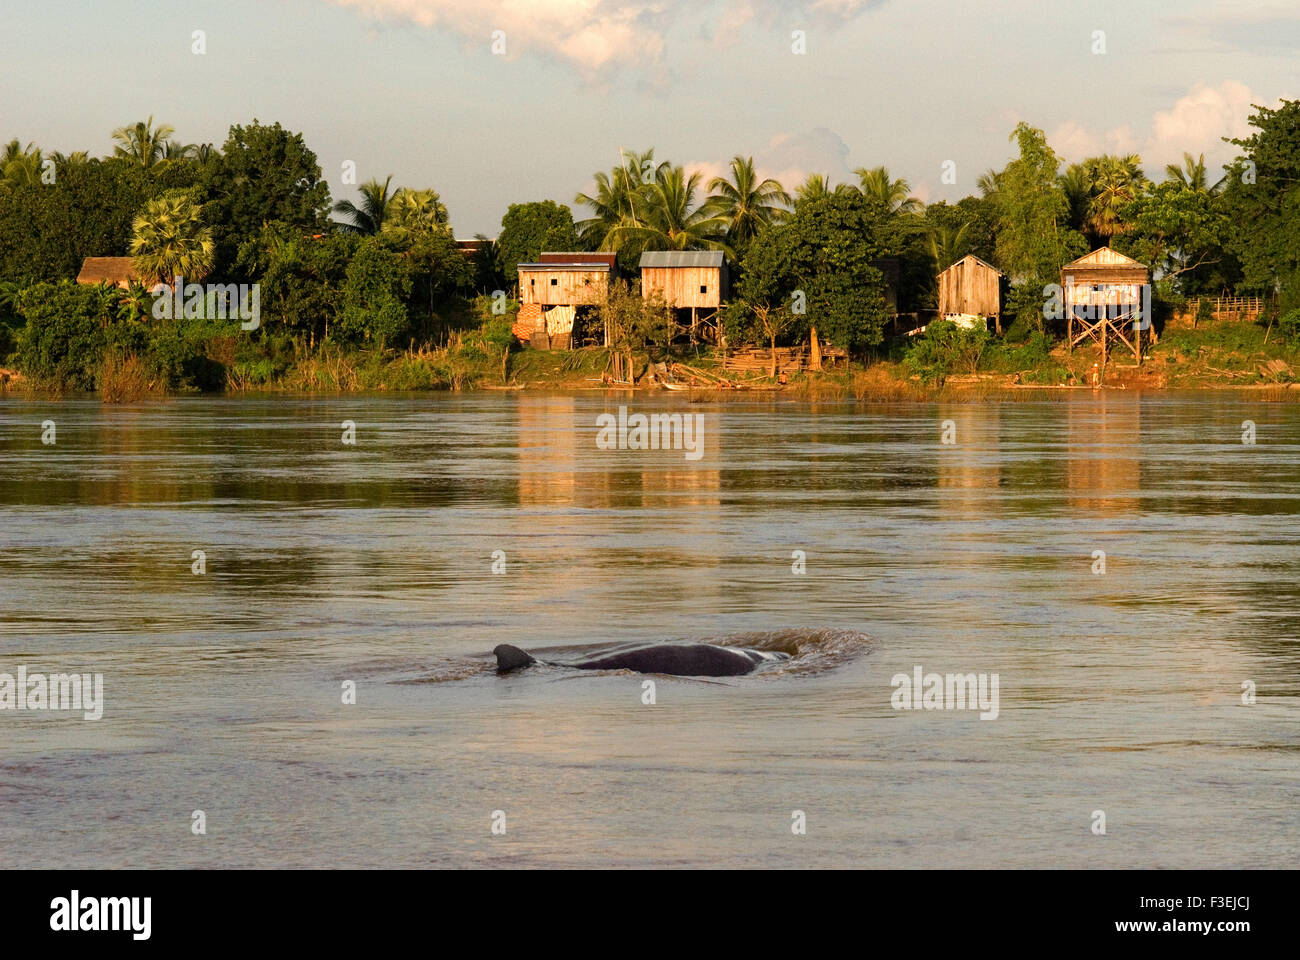 Mekong River near Kampi. Looking for some fresh water dolphins Irrawaddy . Kratie. Irrawaddy Dolphin Watching, The - Stock Image